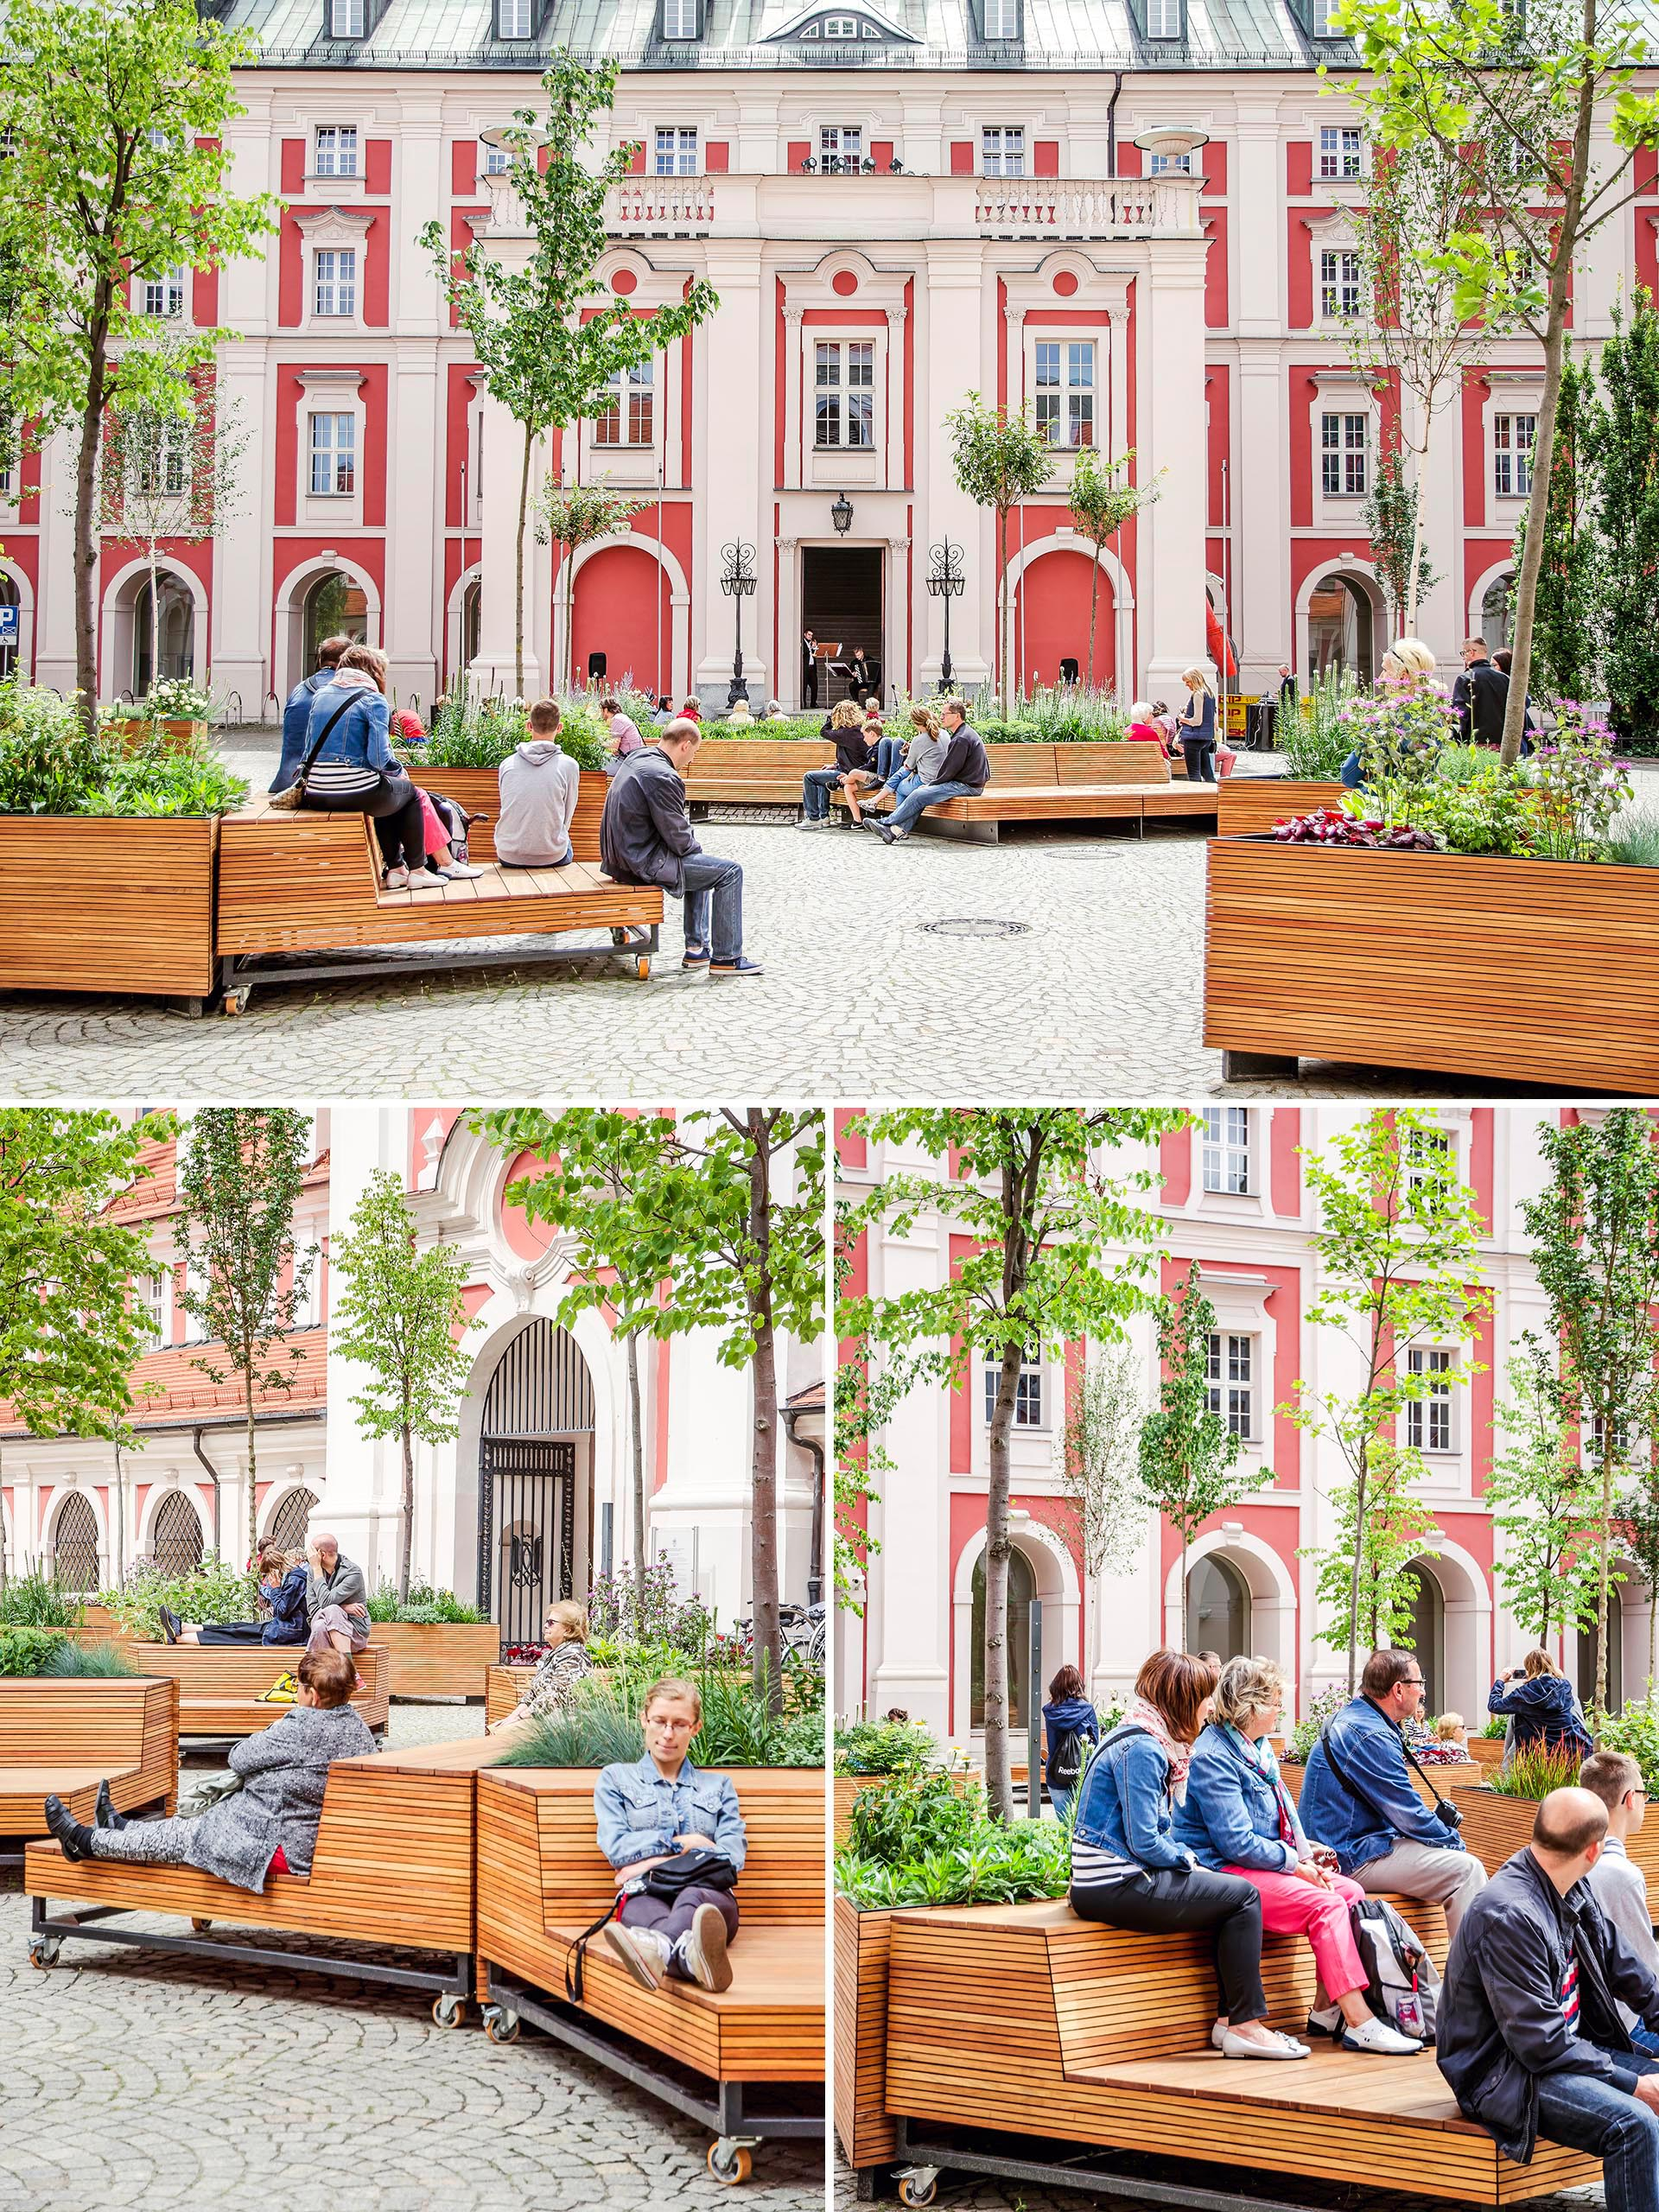 Mobile wood benches rest against triangular planters in a courtyard.